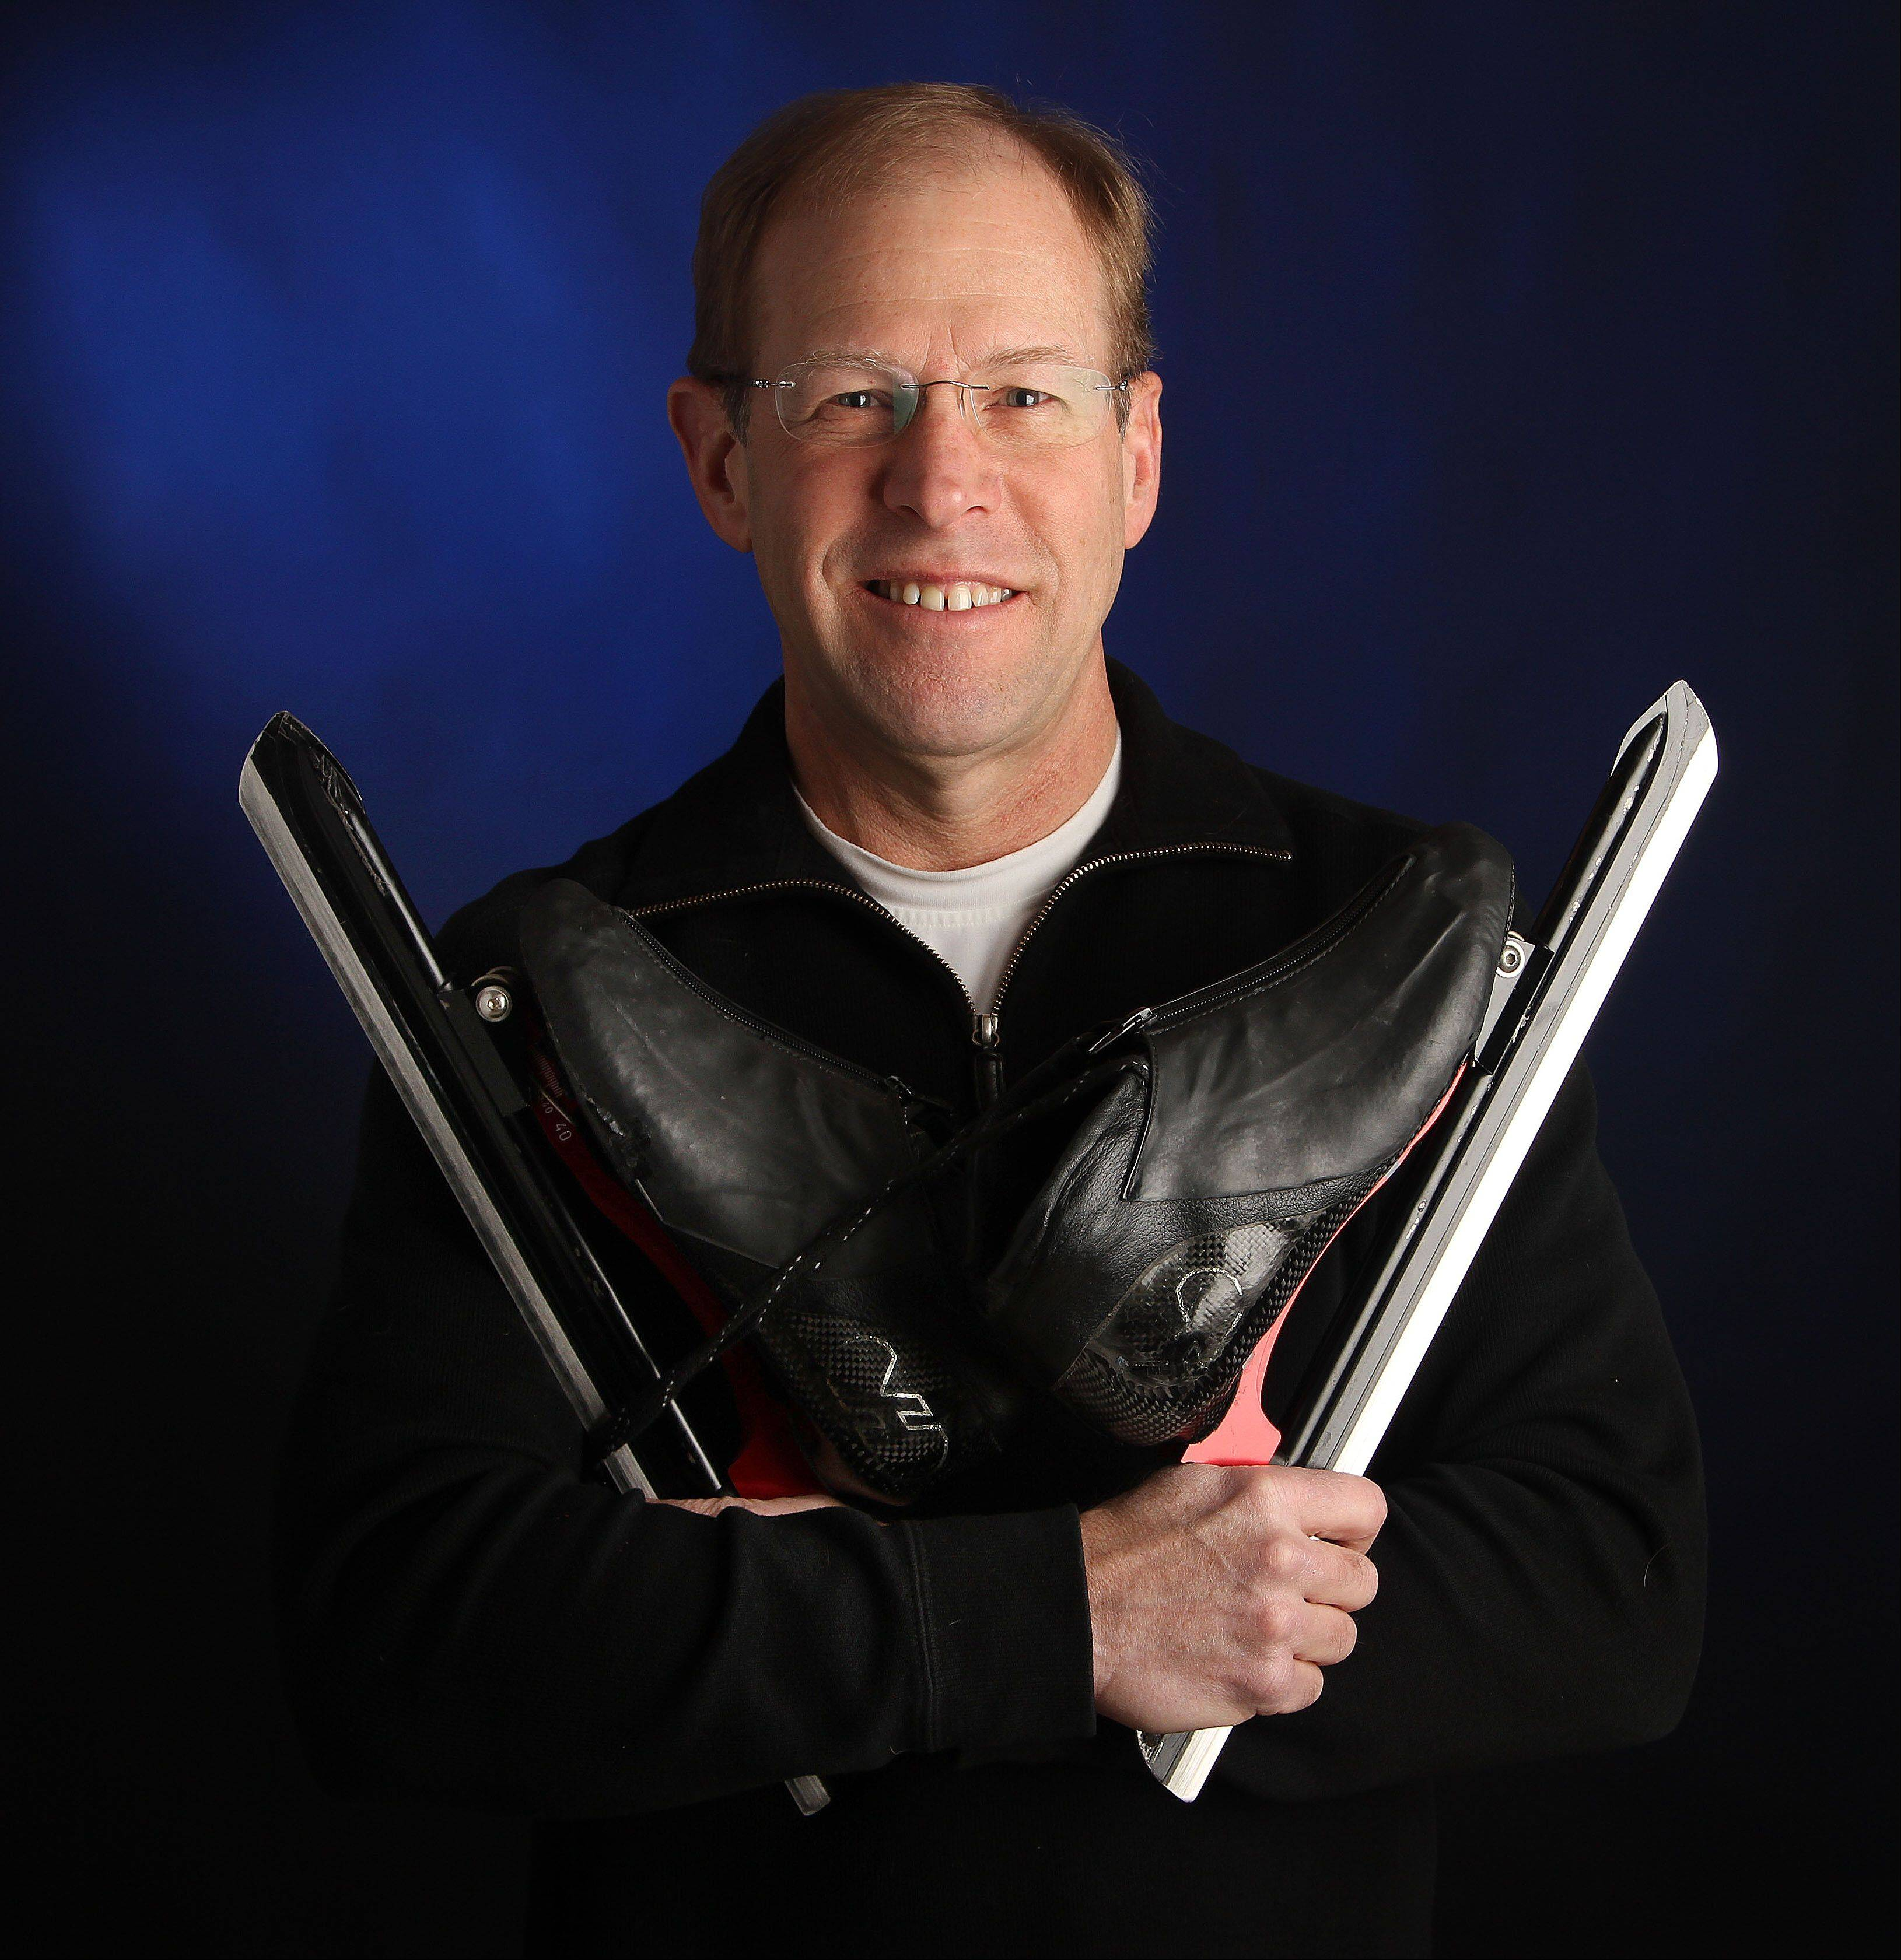 Amateur long track speedskater Bruce Conner of Kildeer was a member of the U.S. national team in the 1970s and returned to the sport in 2005.